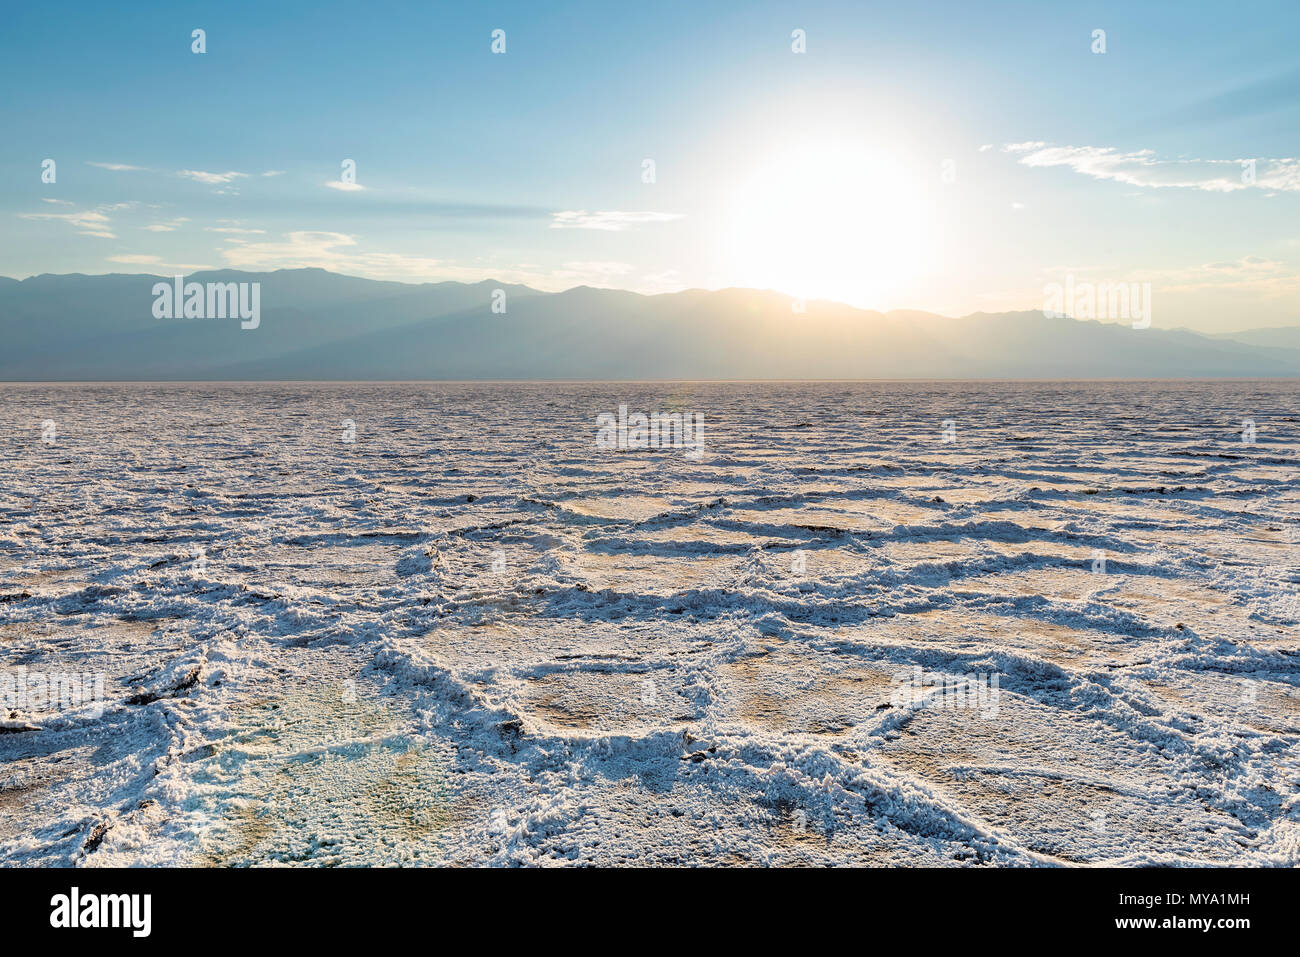 Death Valley National Park, California, USA. - Stock Image